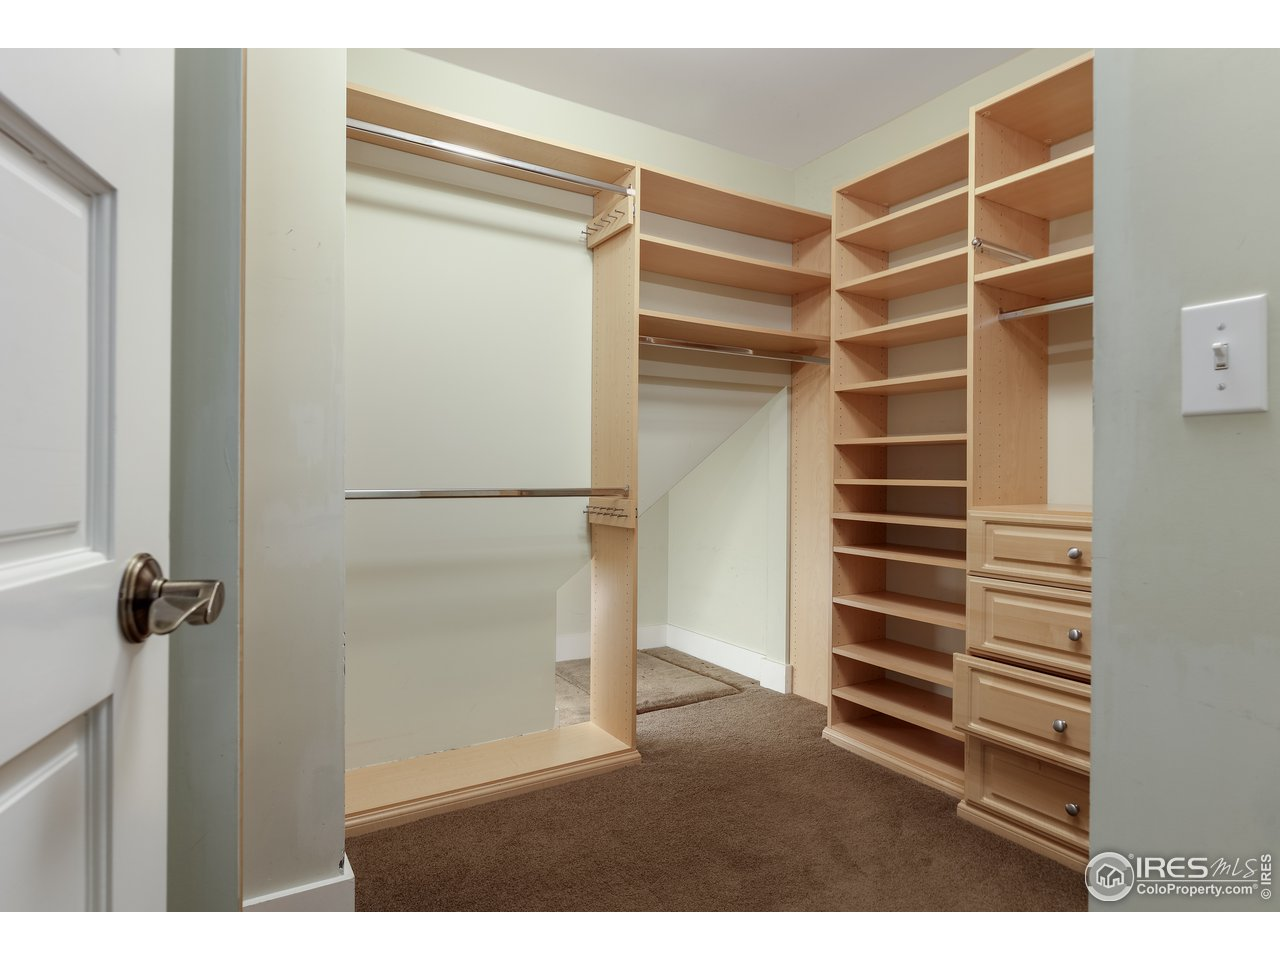 large closet in owner's bedroom